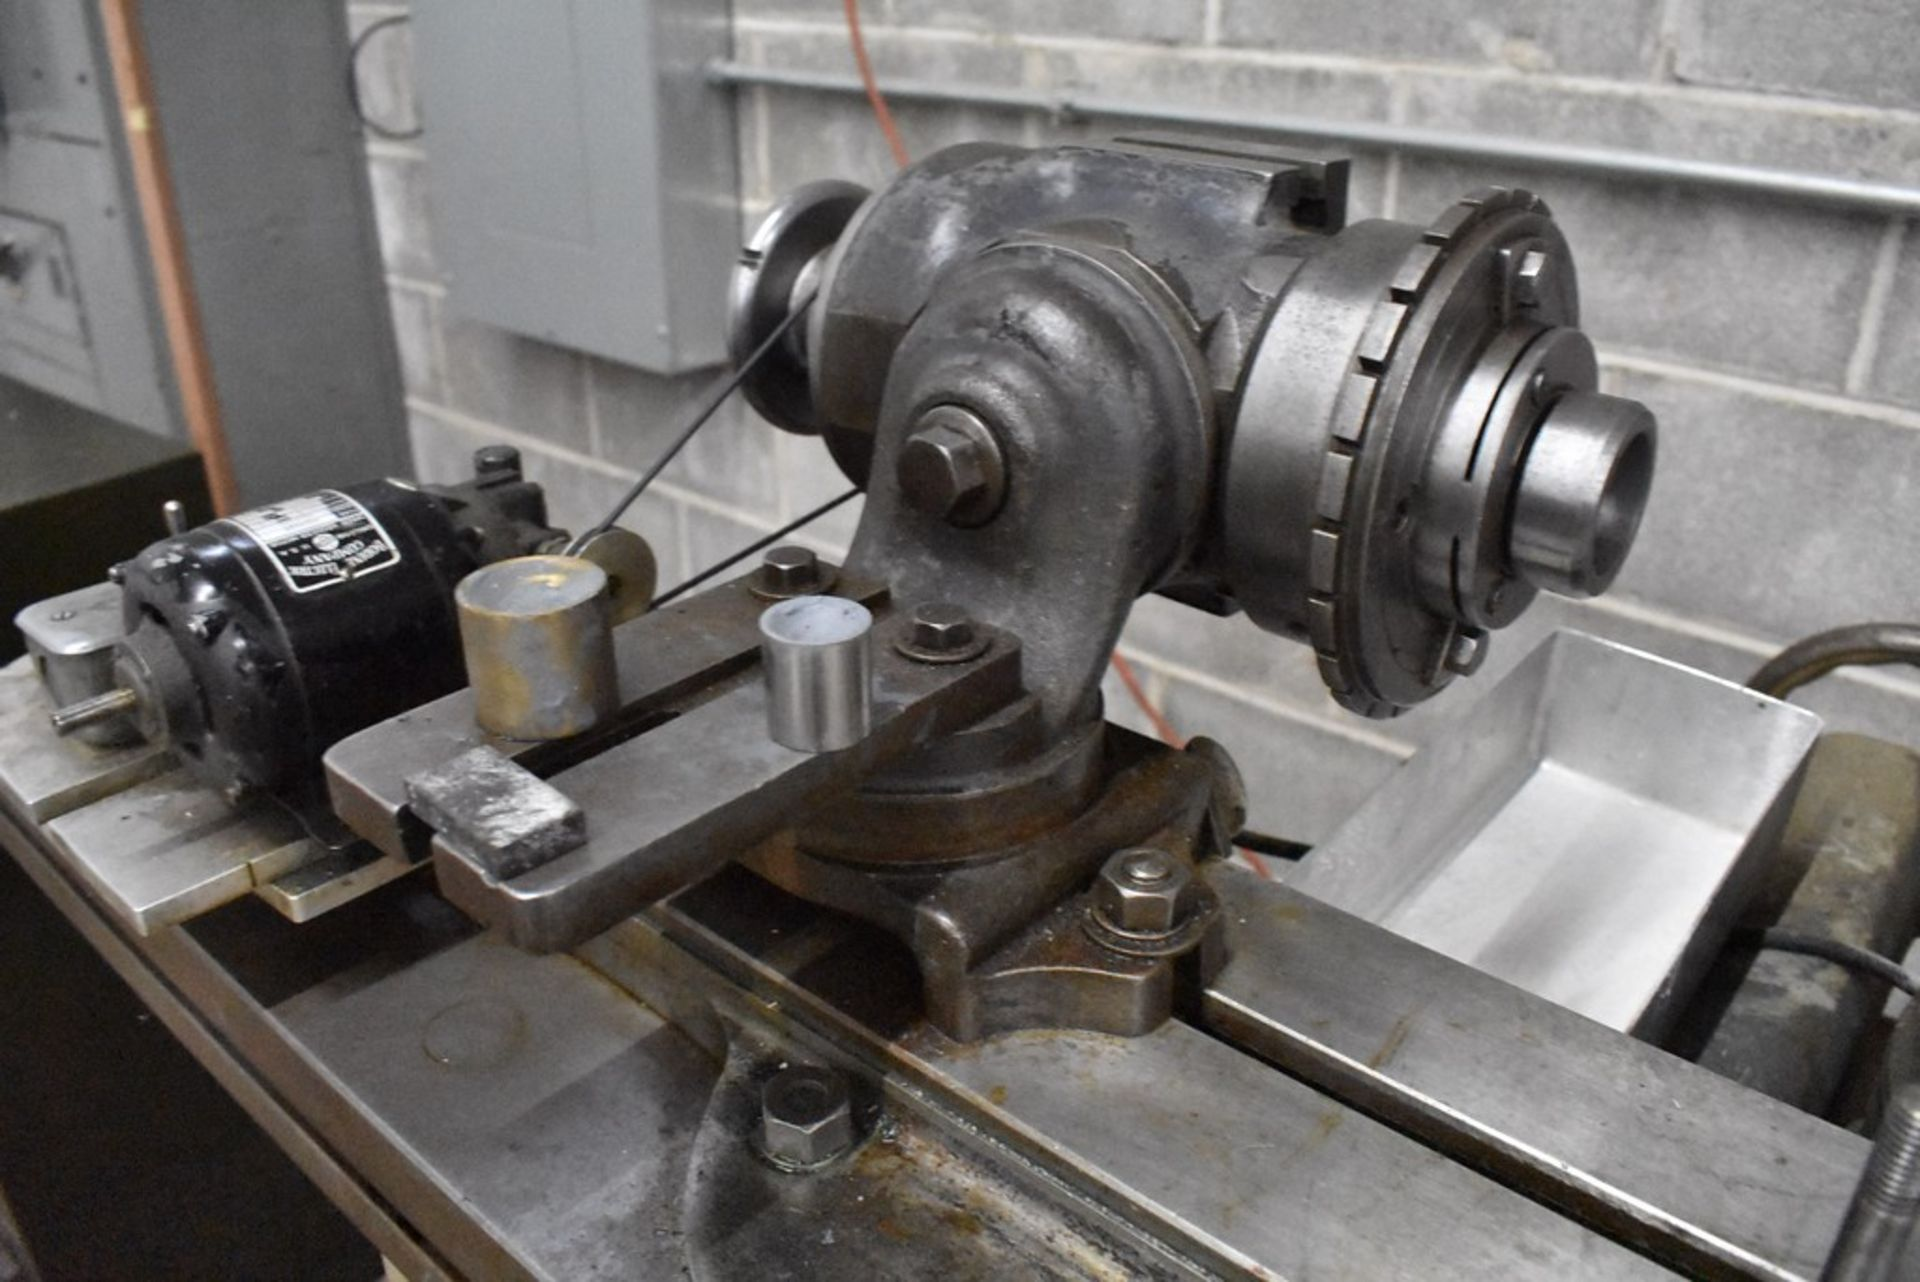 CINCINNATI NO. 2 TOOL AND CUTTER GRINDER, S/N 1D2T1Z-771, WITH MOTORIZED WORK HEAD - Image 10 of 14